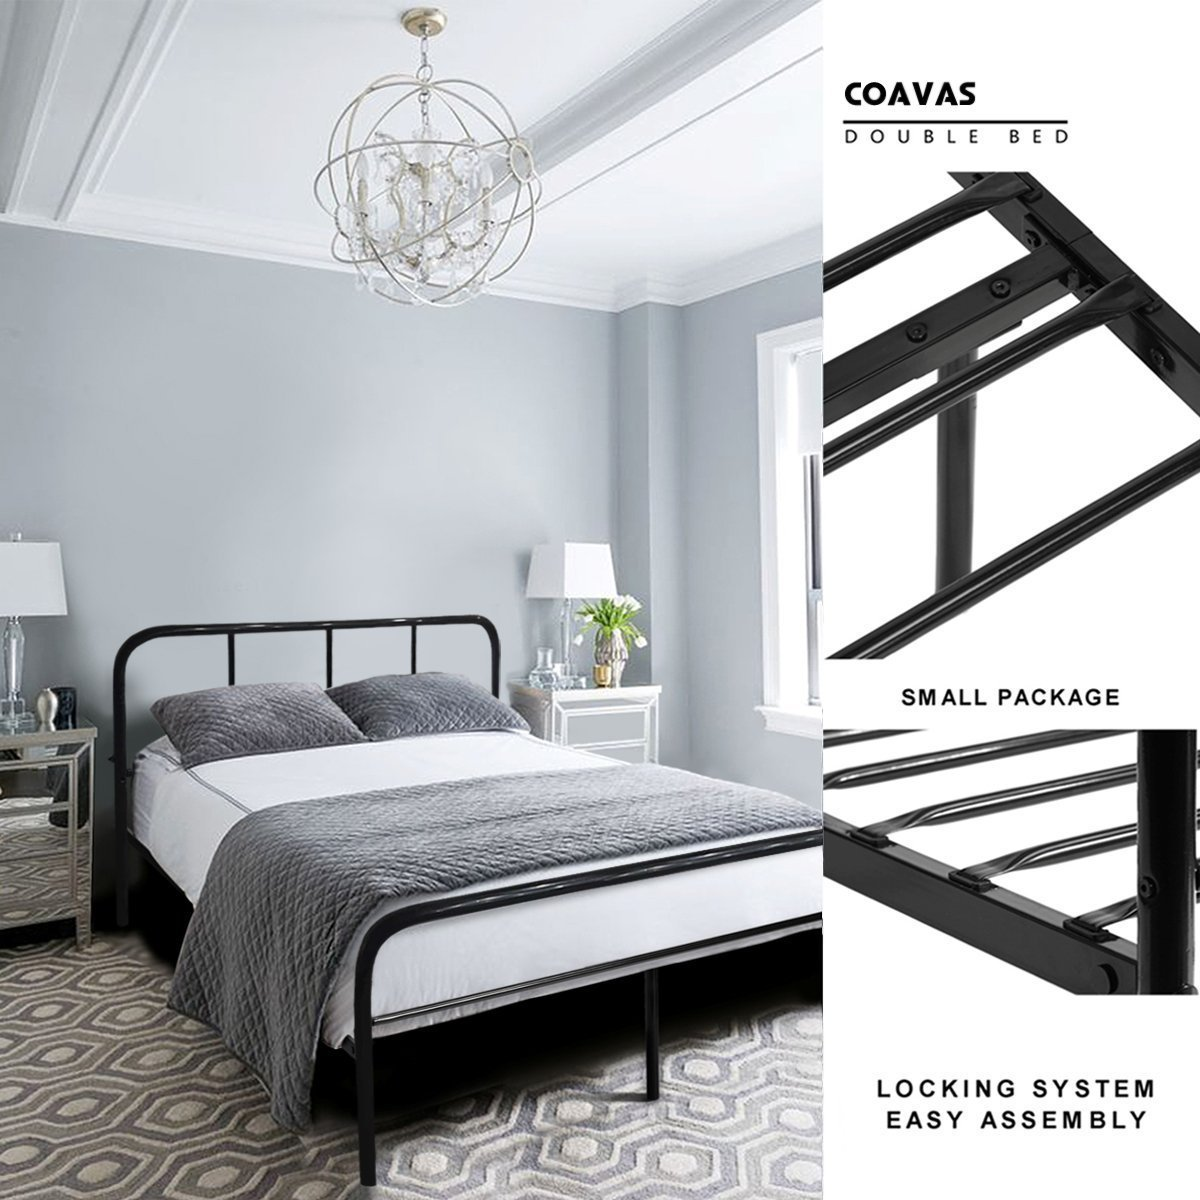 Coavas Double Bed Frame 4ft 6 Bed Frame with 2 headboard Metal Bed ...